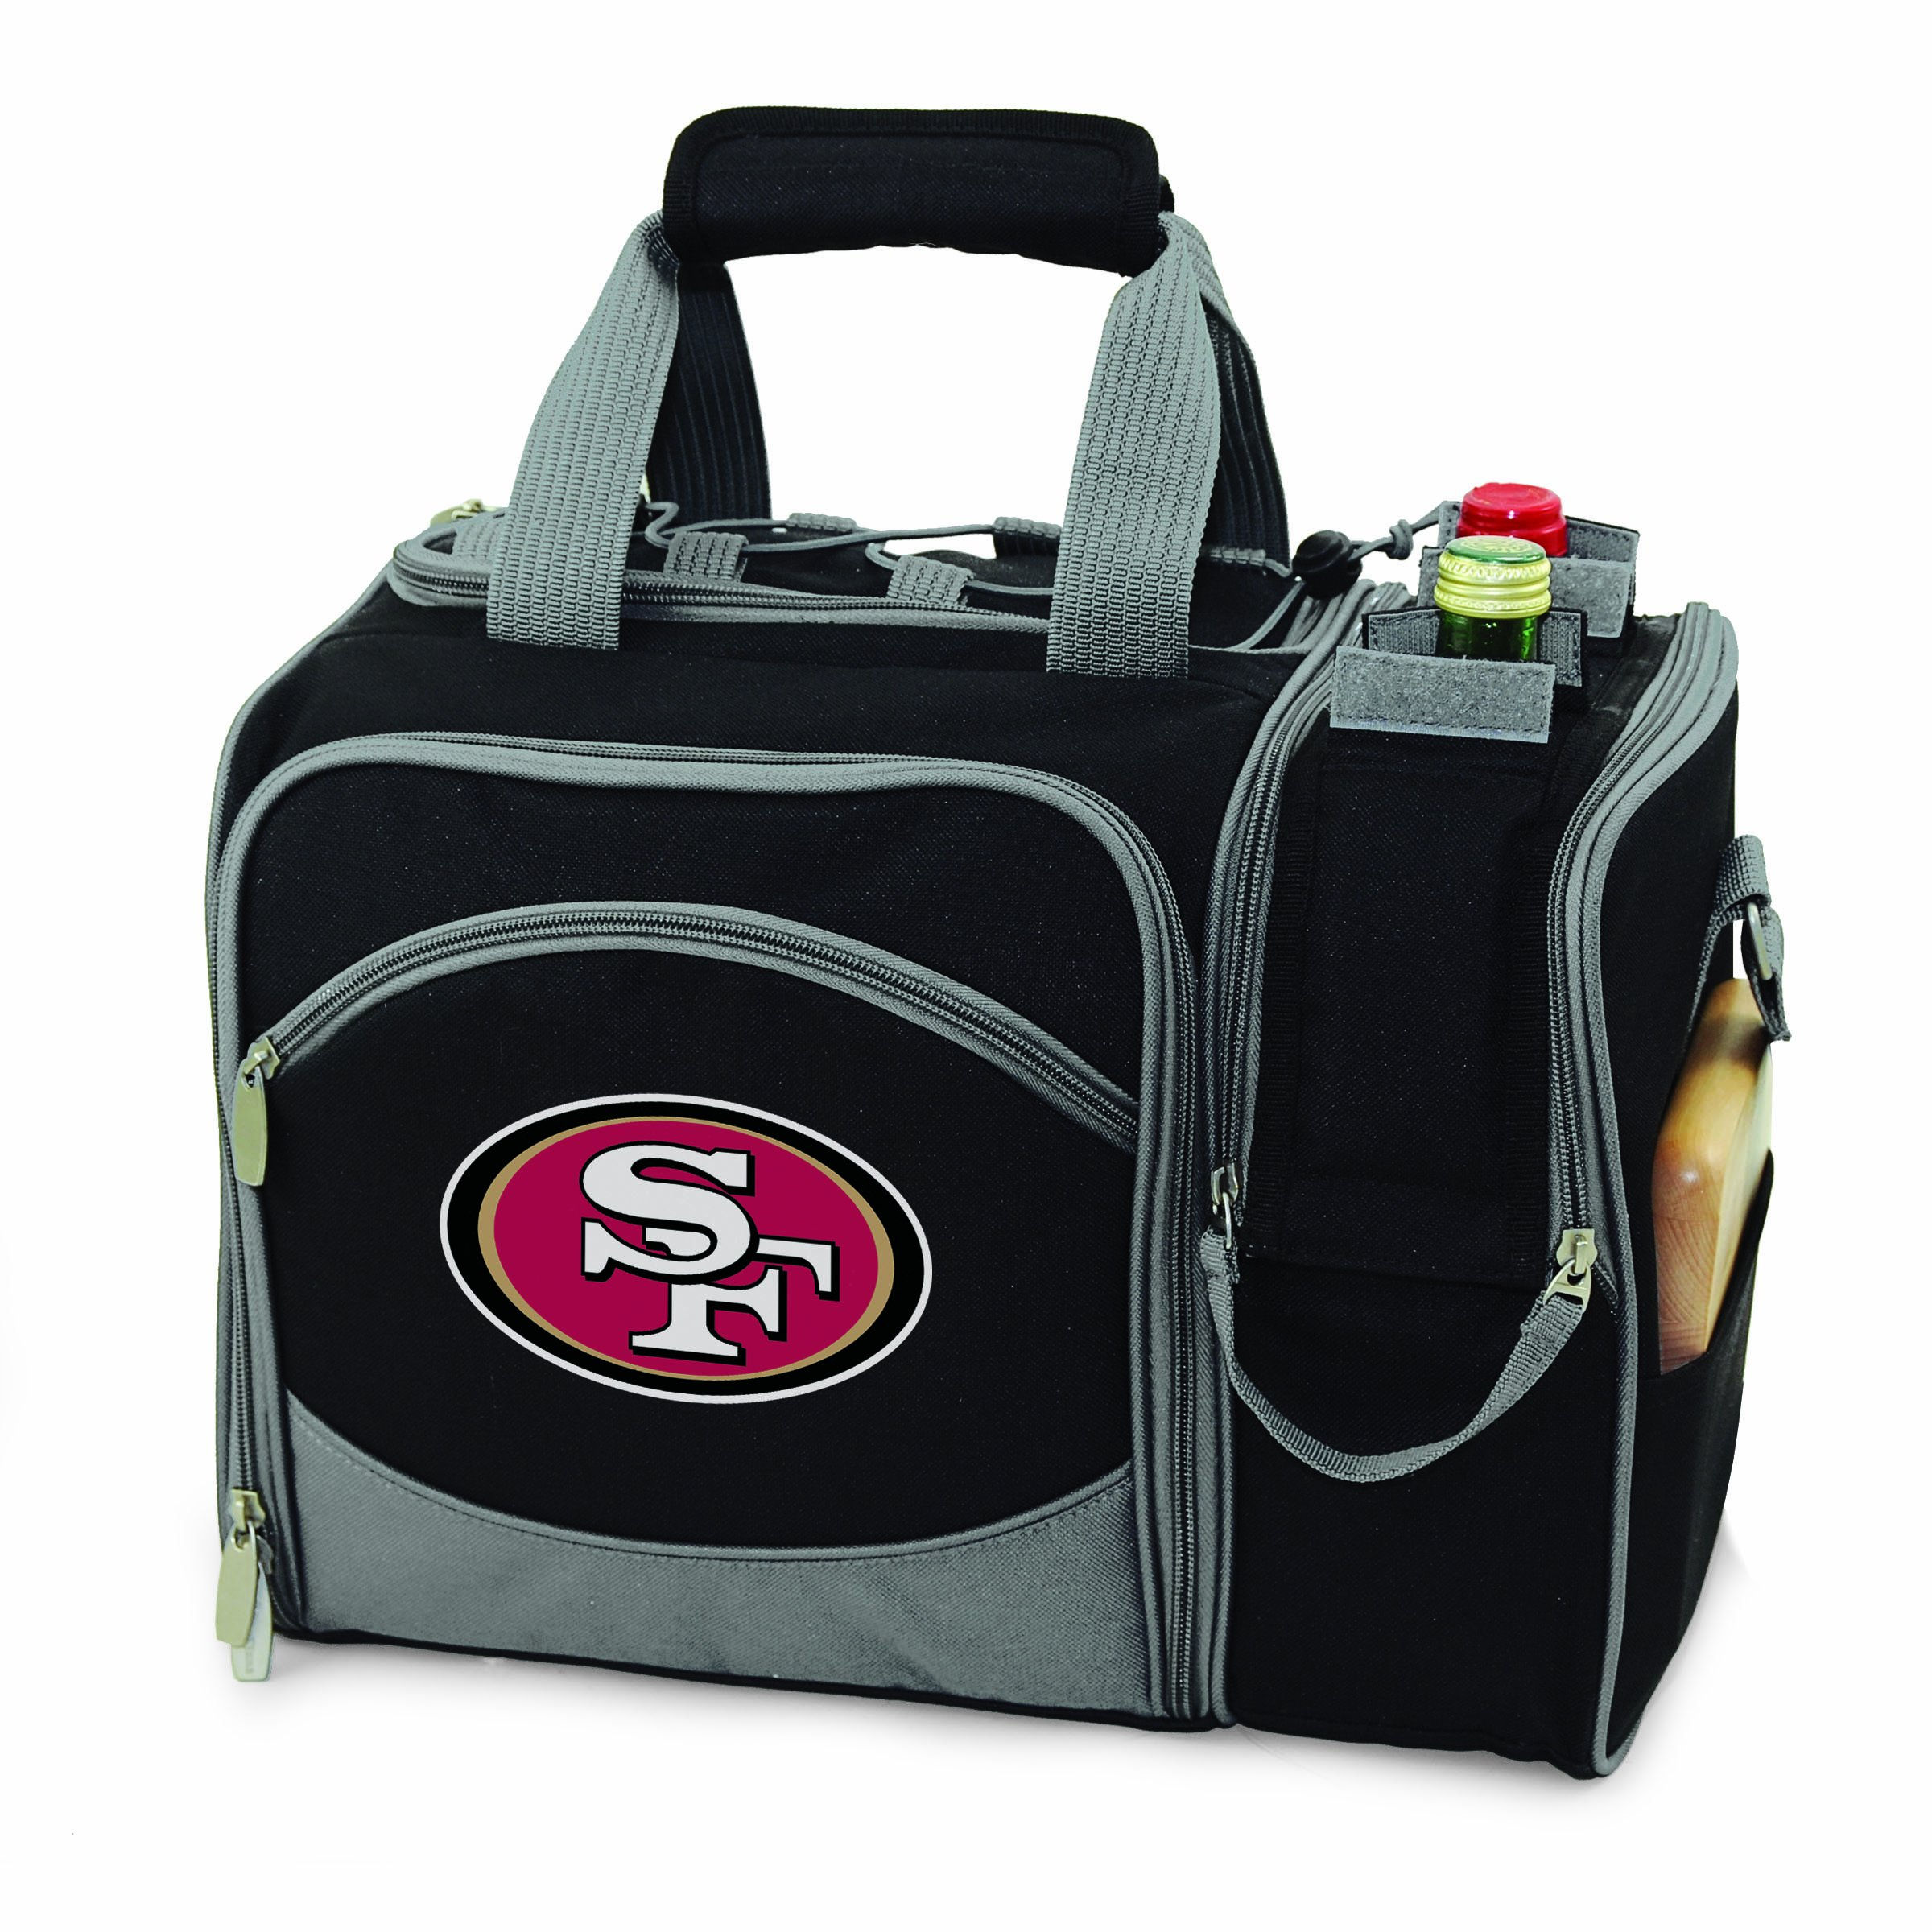 NFL San Francisco 49ers Malibu Insulated Shoulder Pack with Deluxe Picnic Service for Two